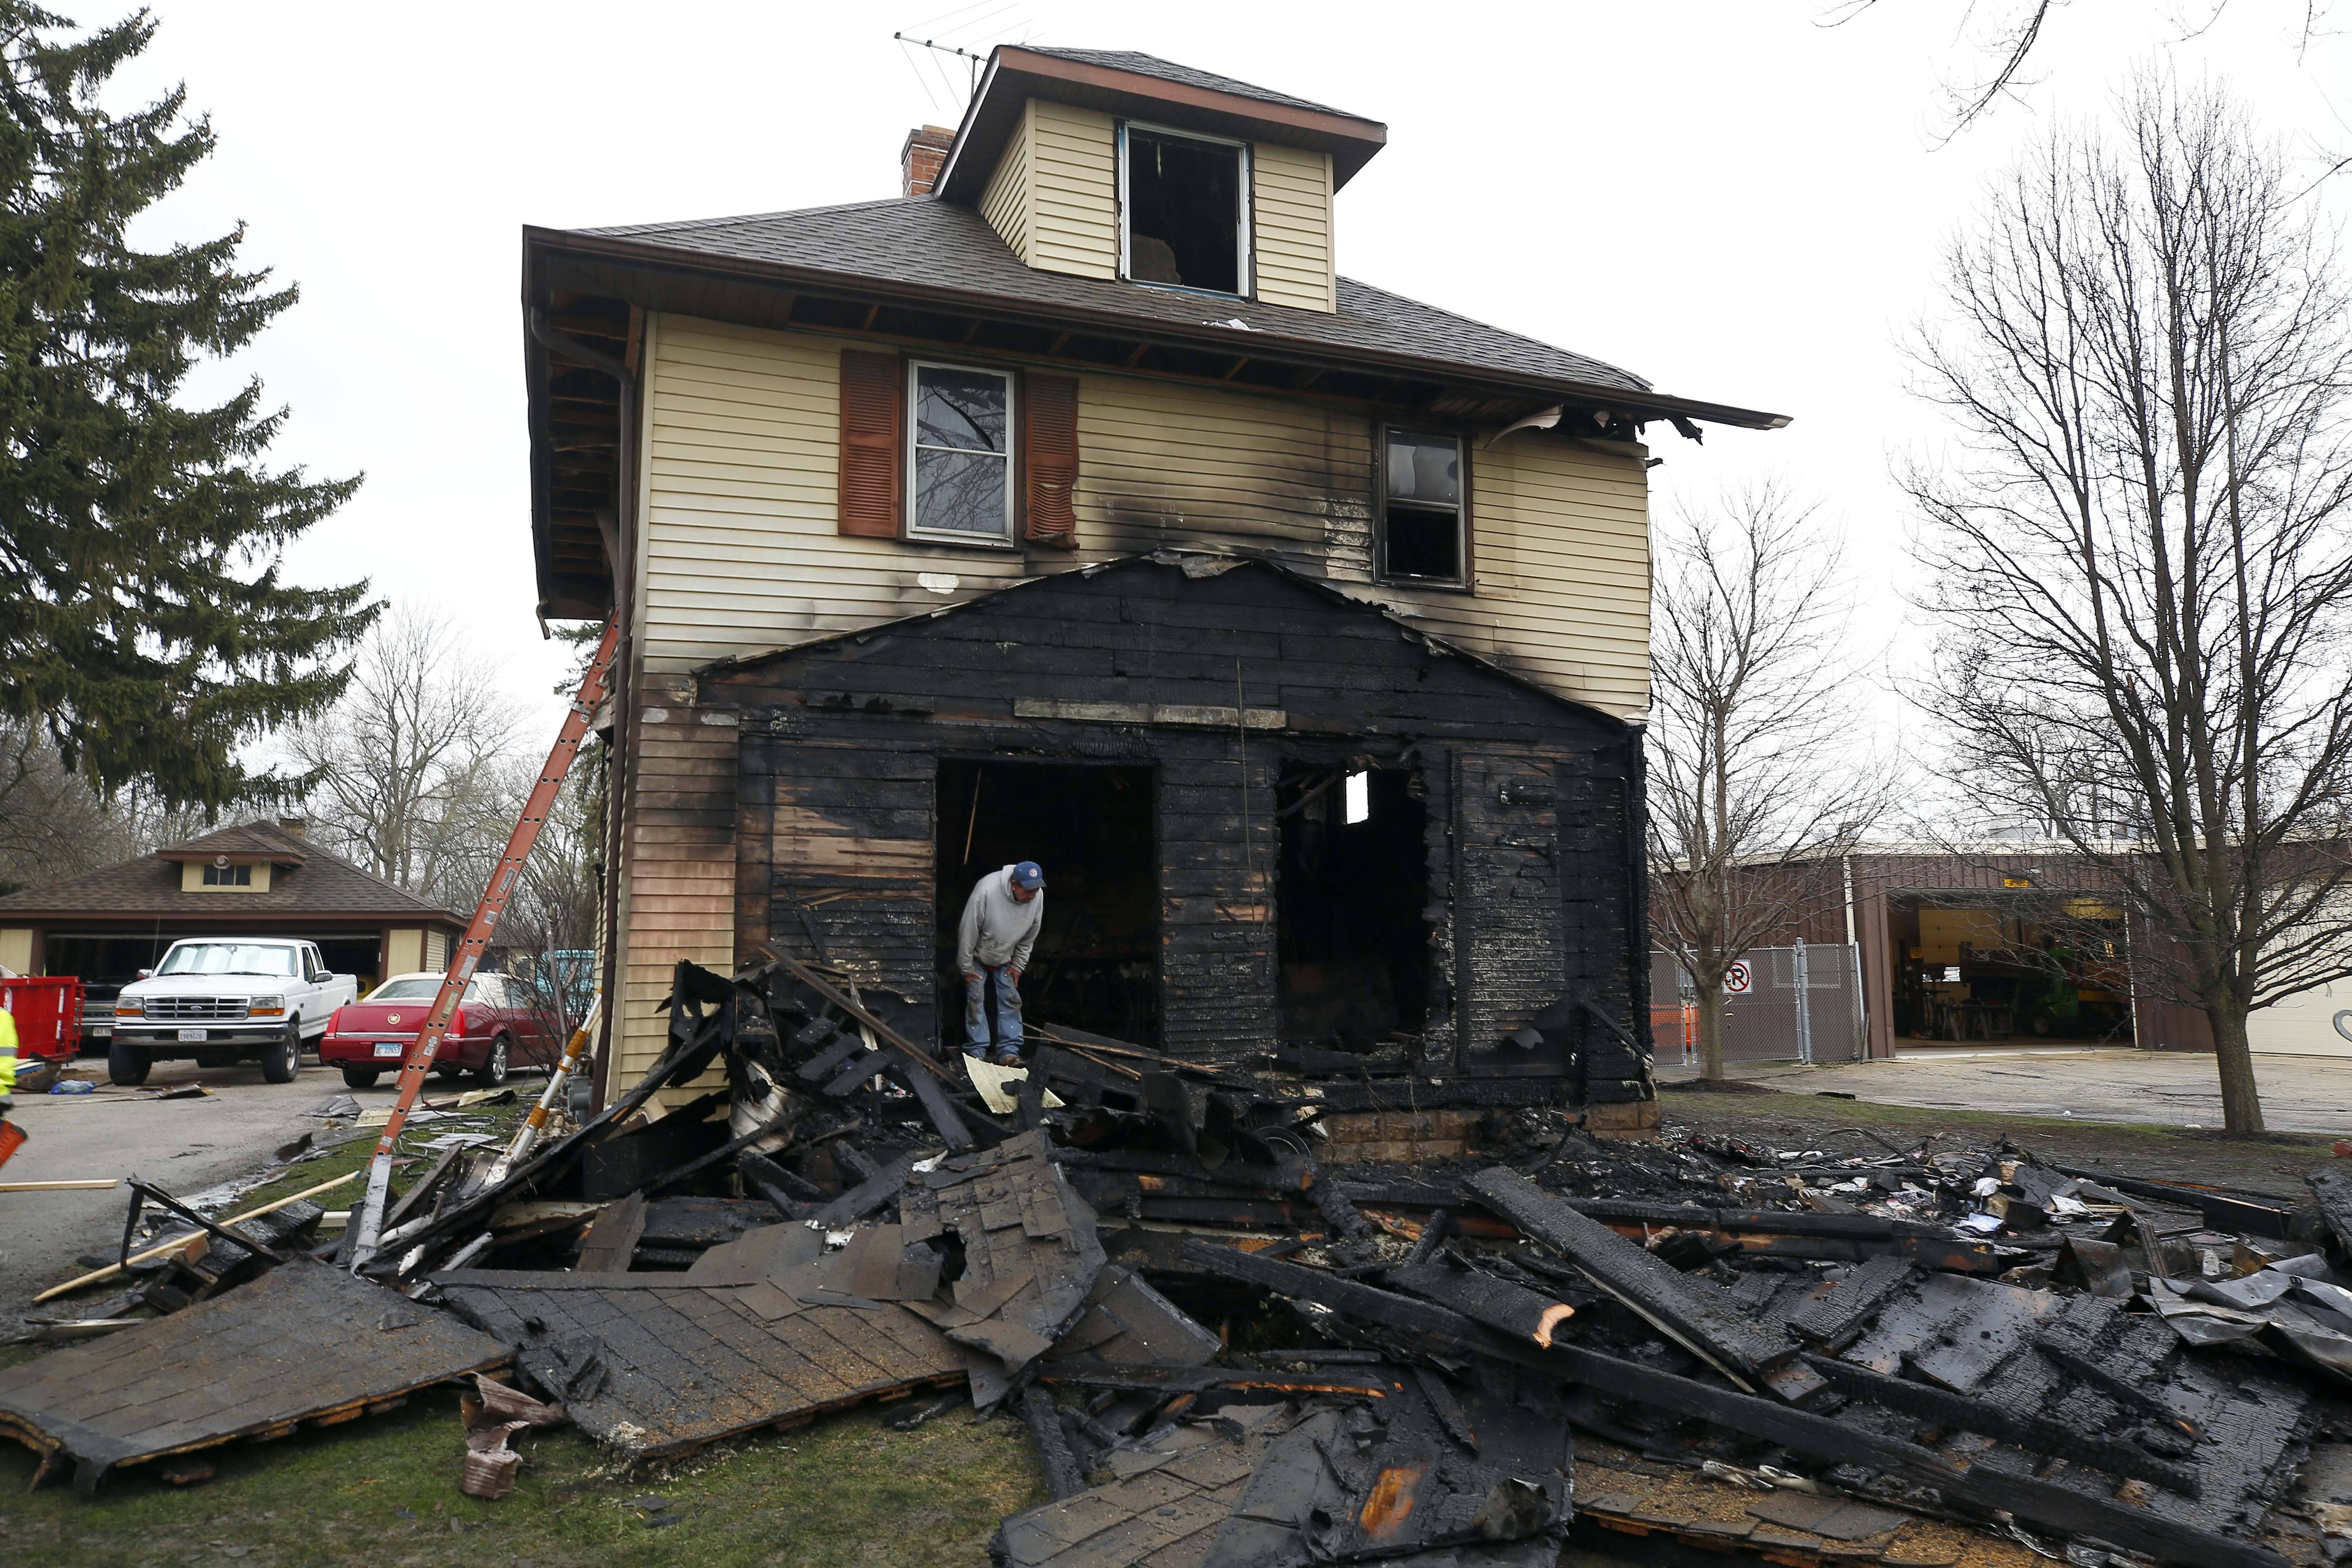 Man killed, 92-year-old injured in West Chicago fire